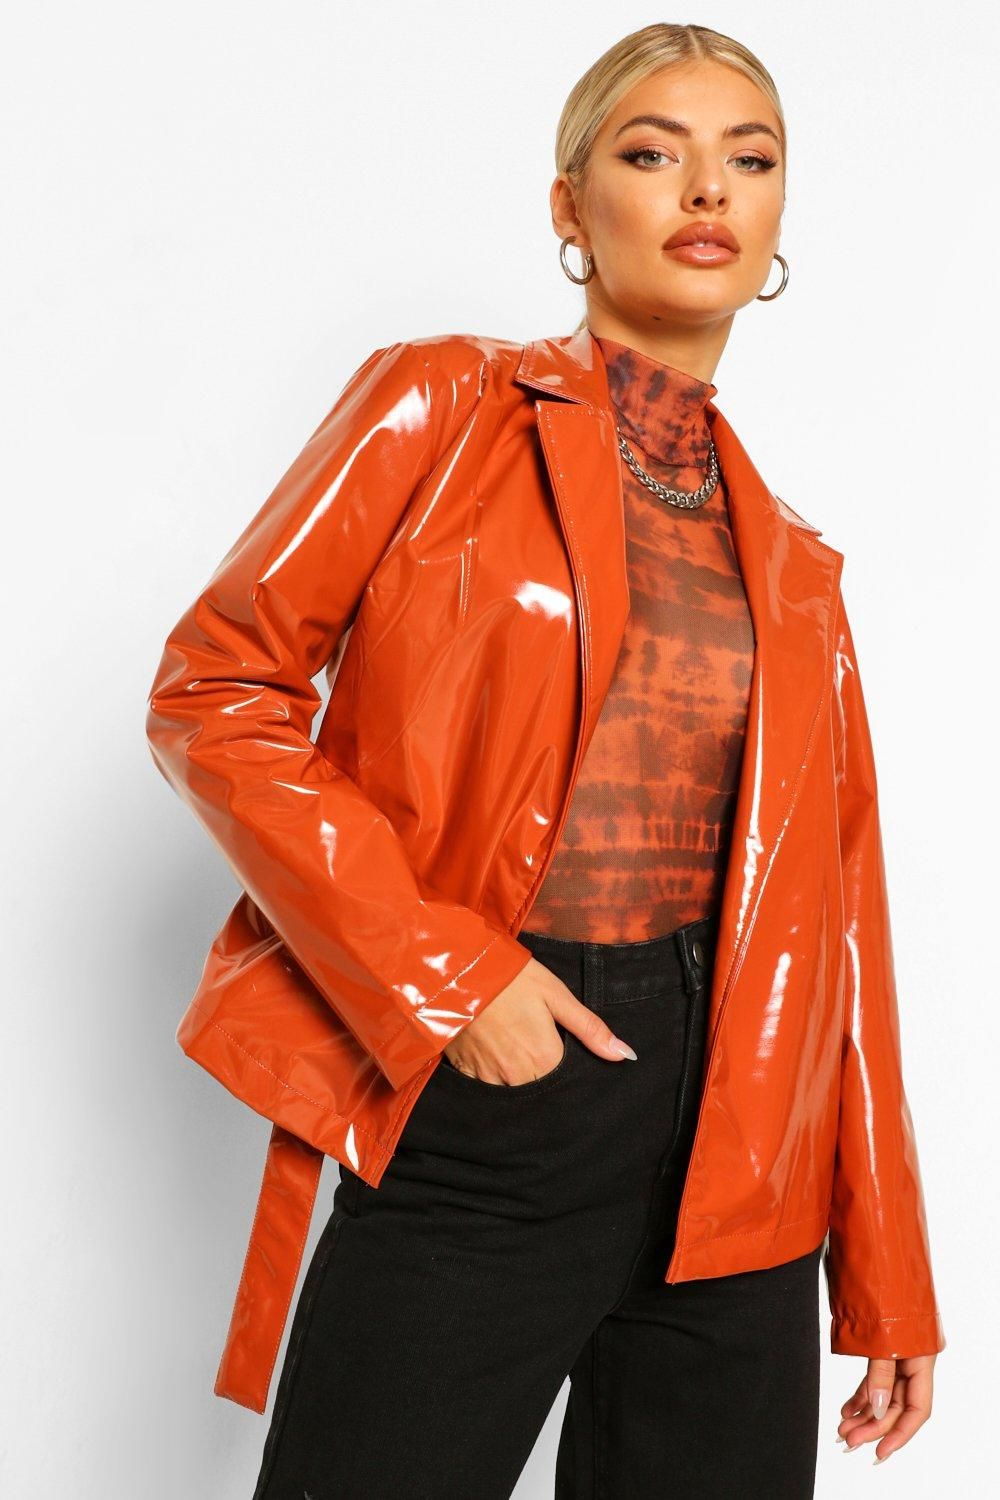 Vinyl Wrap Jacket Boohoo In 2020 Wrap Jacket Jackets Orange Jacket